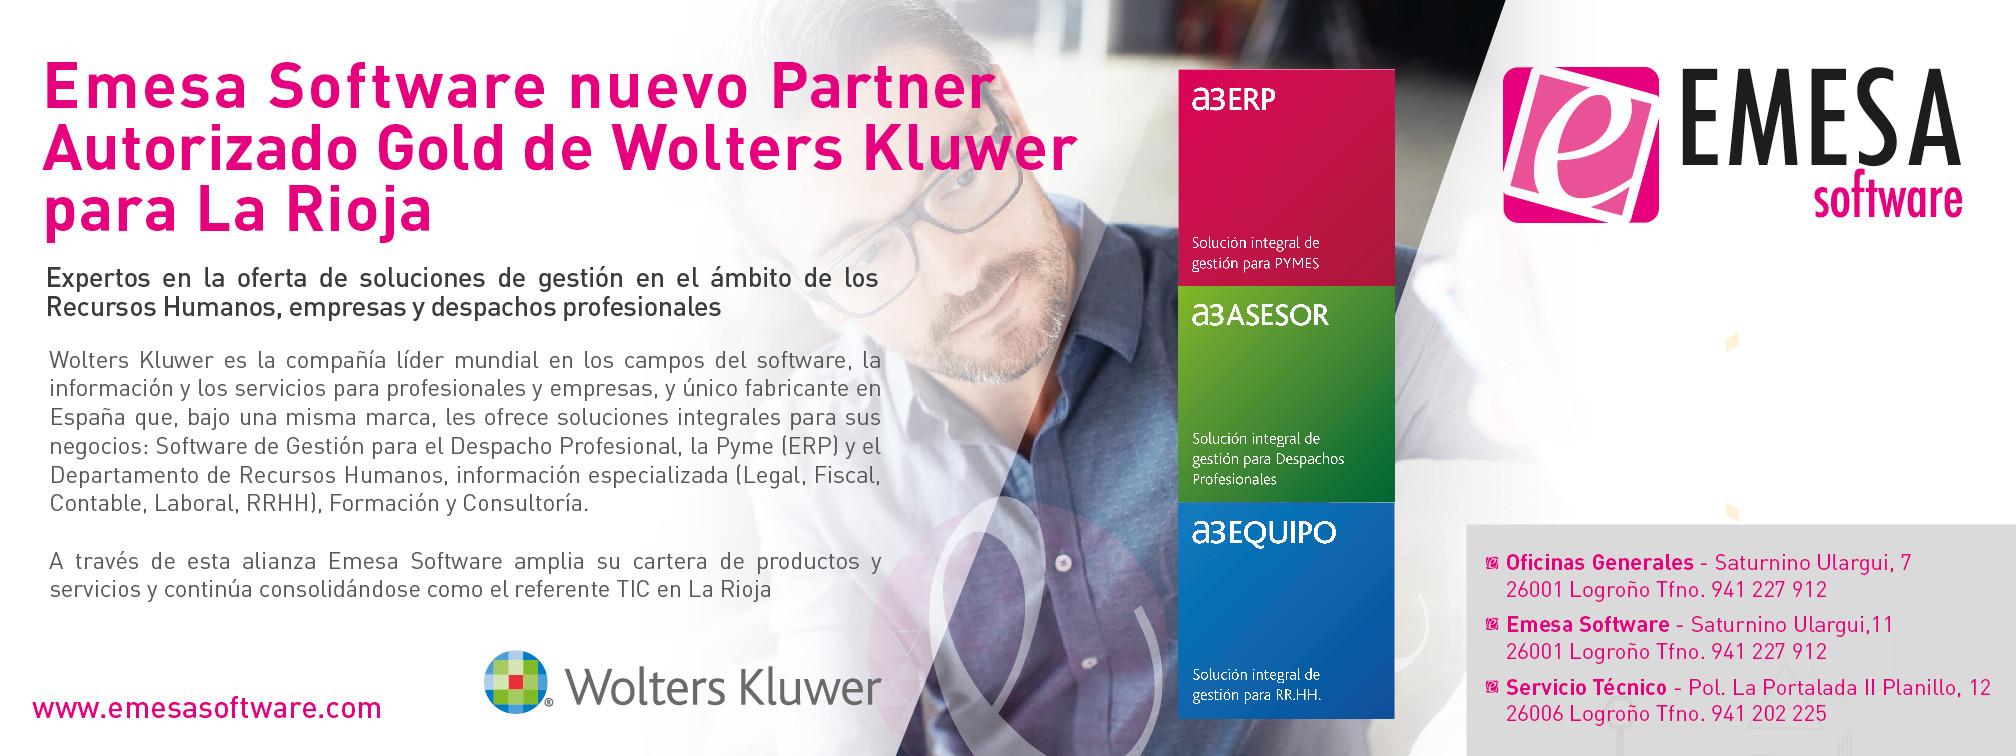 Emesa Software nuevo Partner Wolters Kluwer